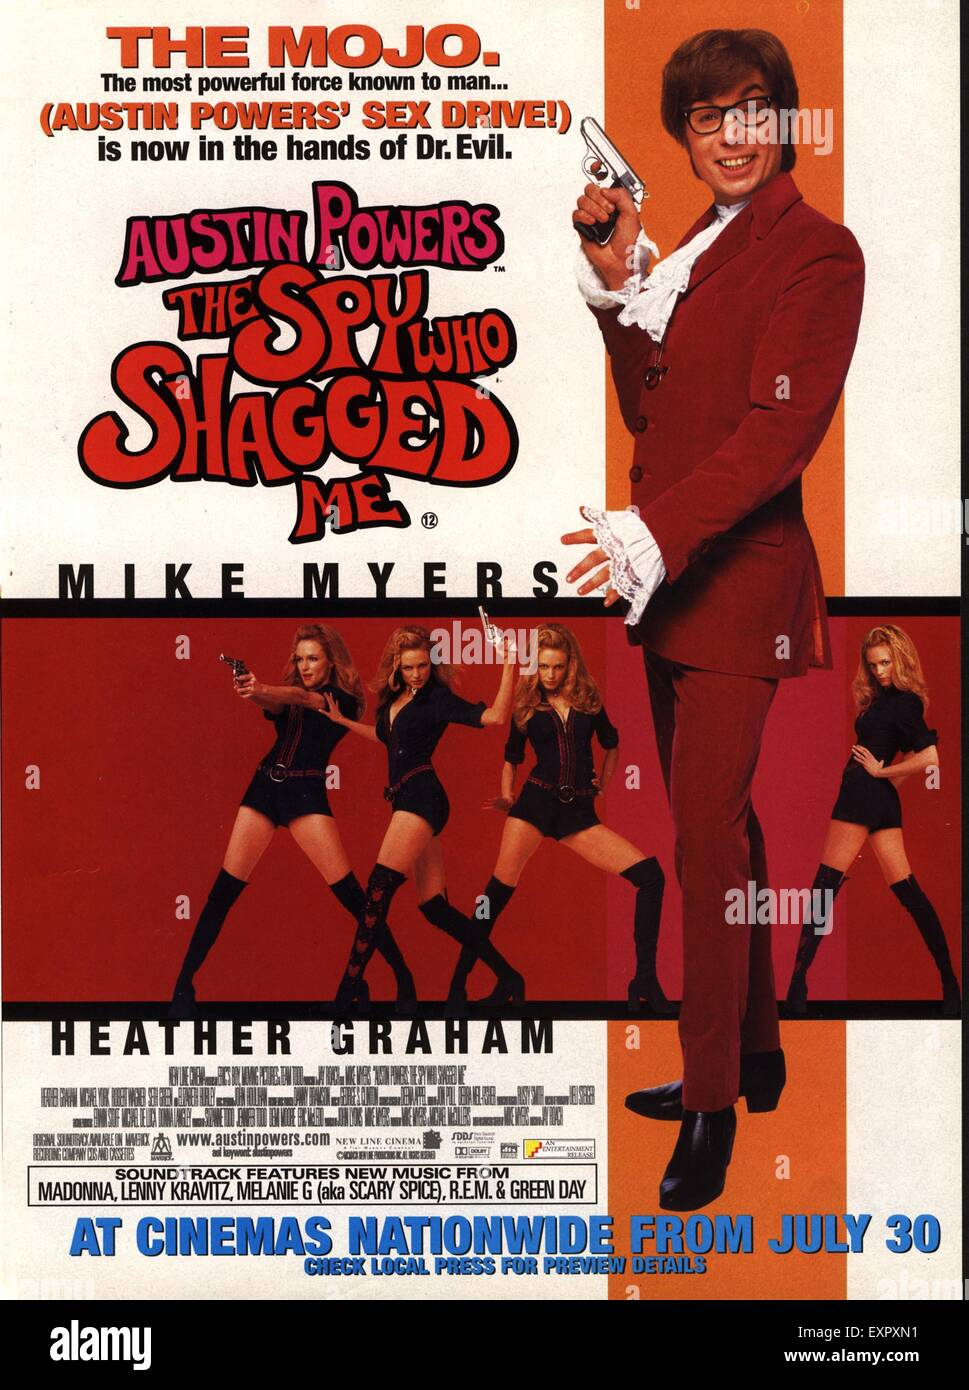 2000s USA The Spy Who Shagged Me Film Poster - Stock Image